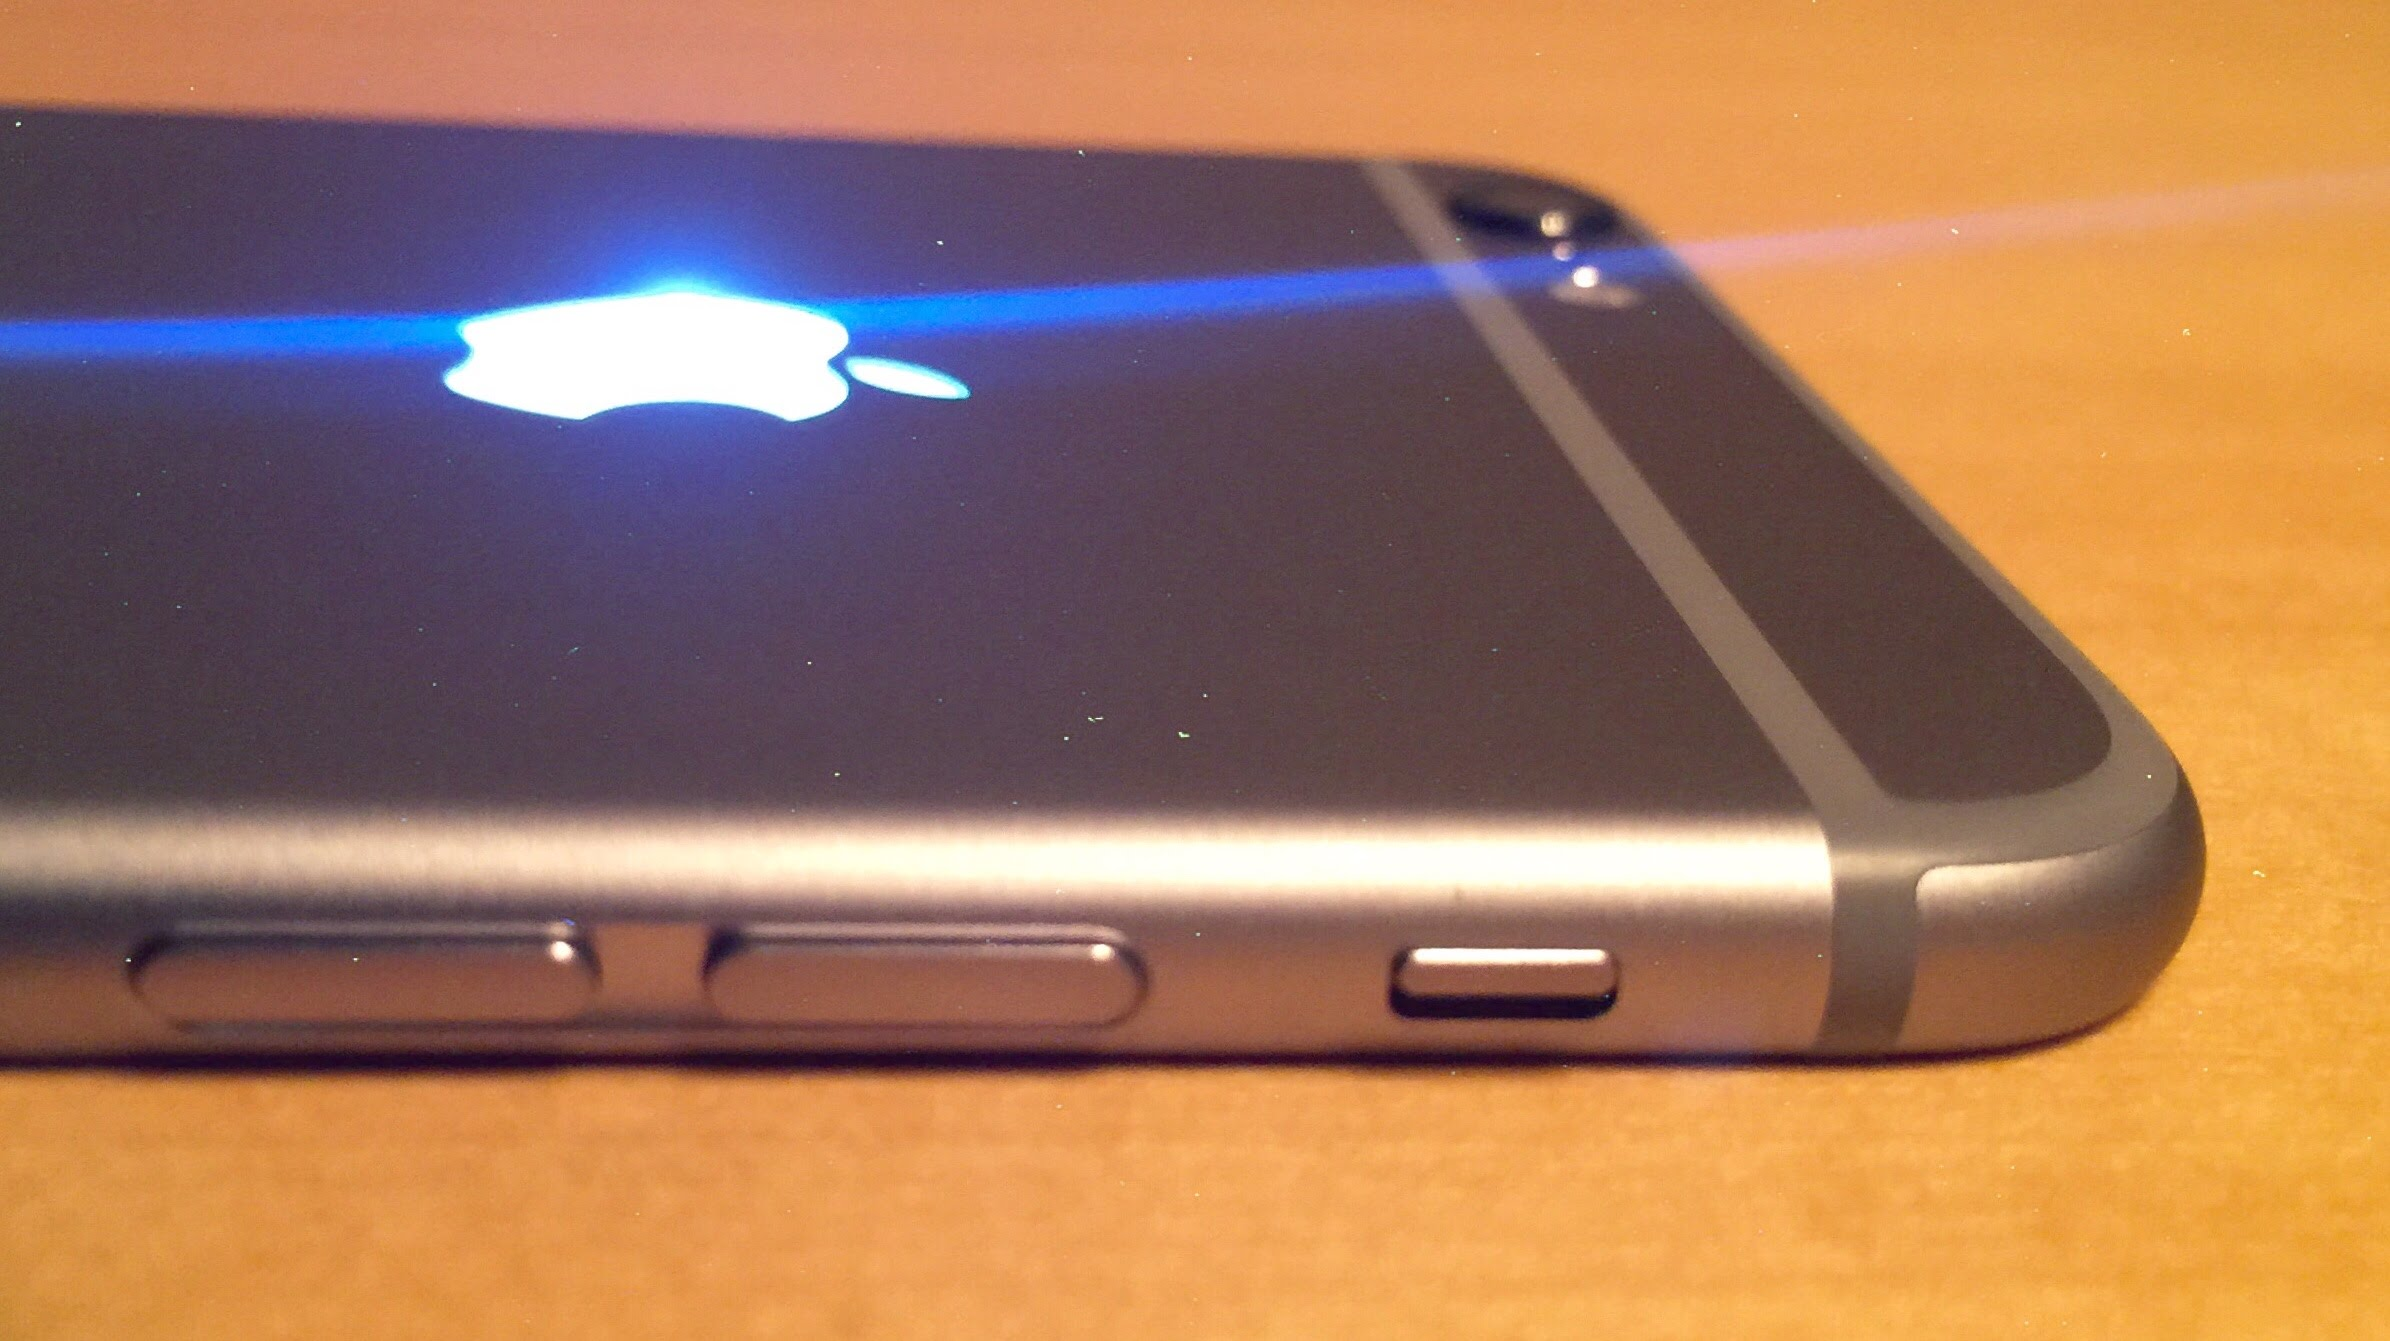 How to install a glowing Apple logo on iPhone 6s f8faf28ff